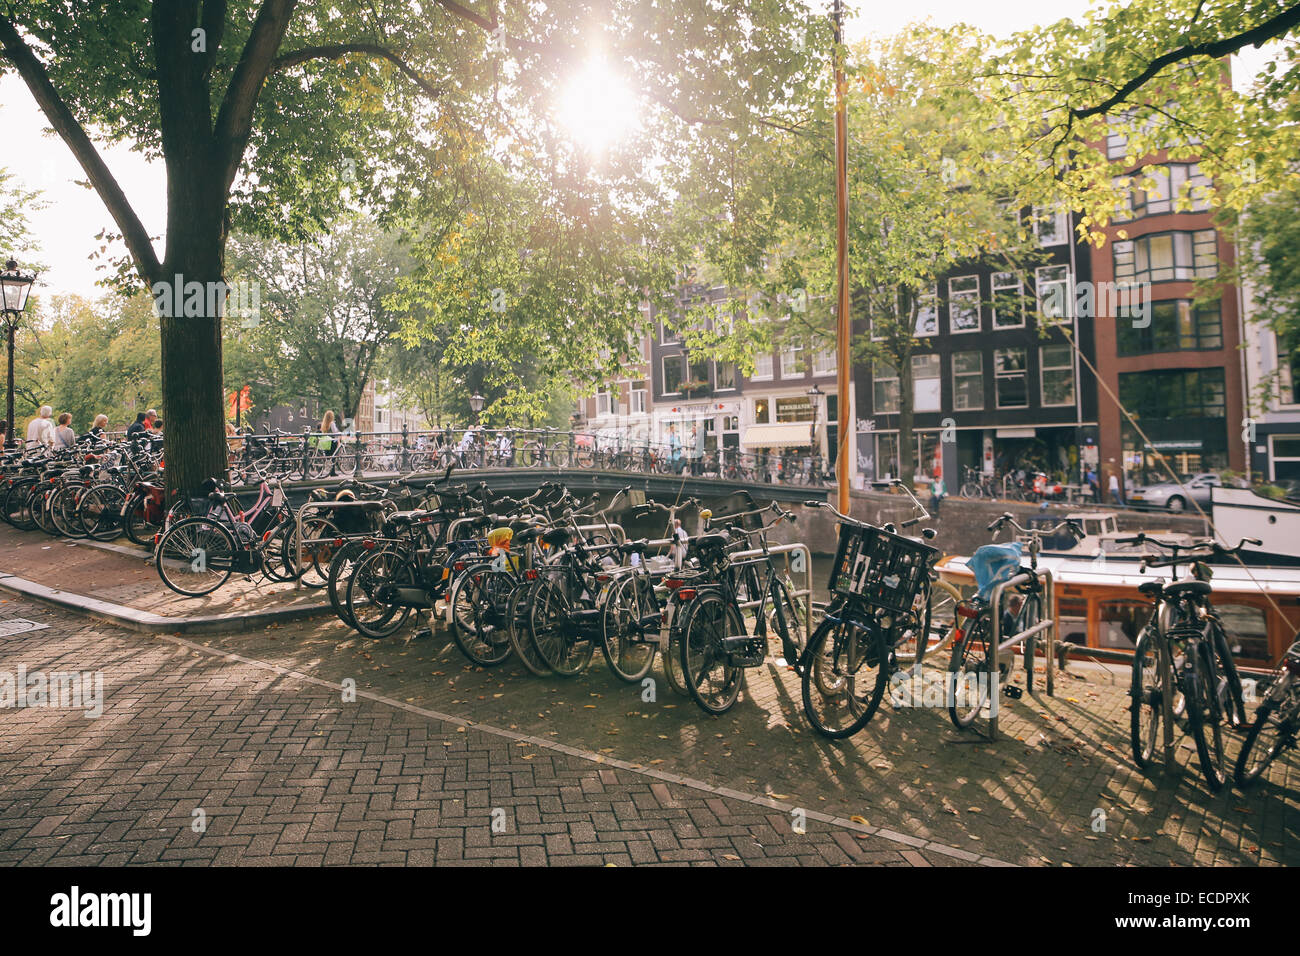 amsterdam bicycles bikes canal day sun flare - Stock Image